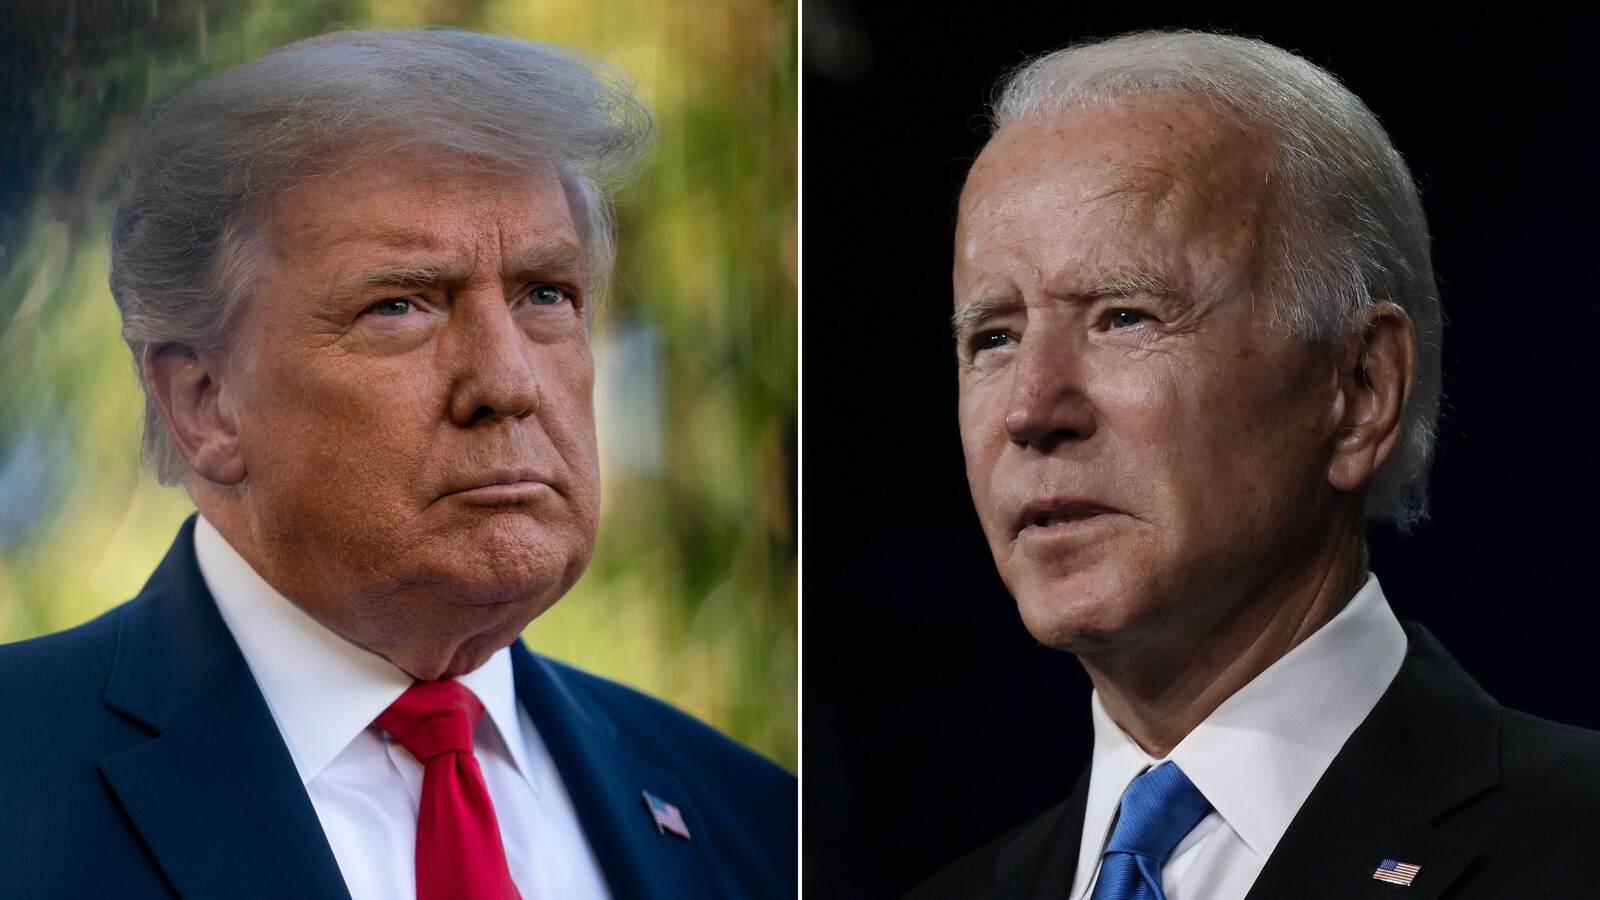 Liberals used the courts to block Trump's agenda. Republicans are using the same playbook against Biden.